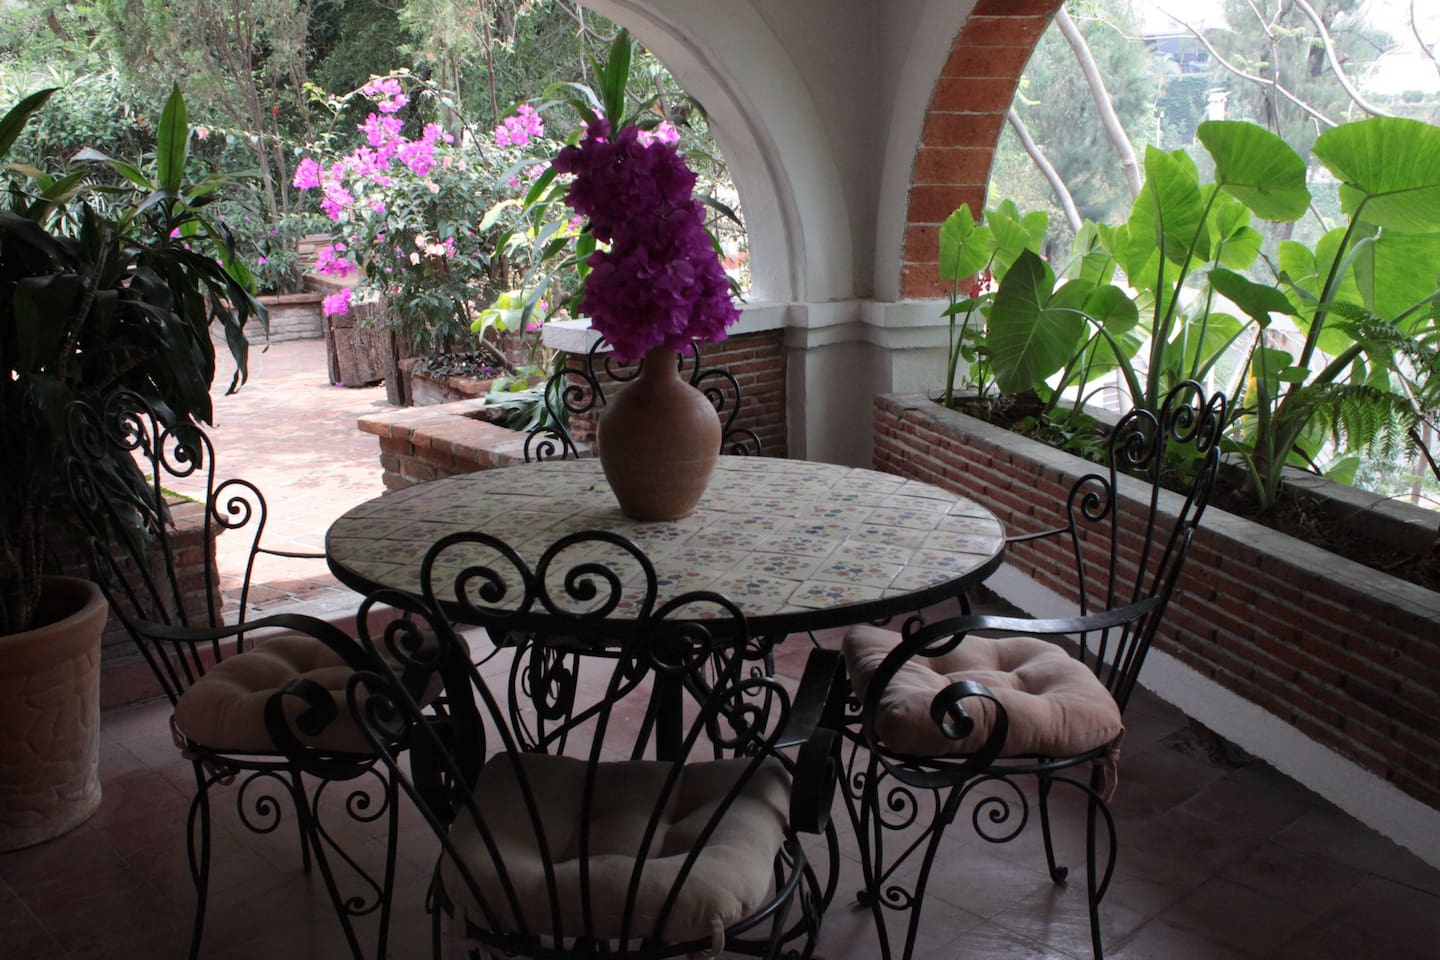 Terraza con parrilla/ View of covered Terrace.